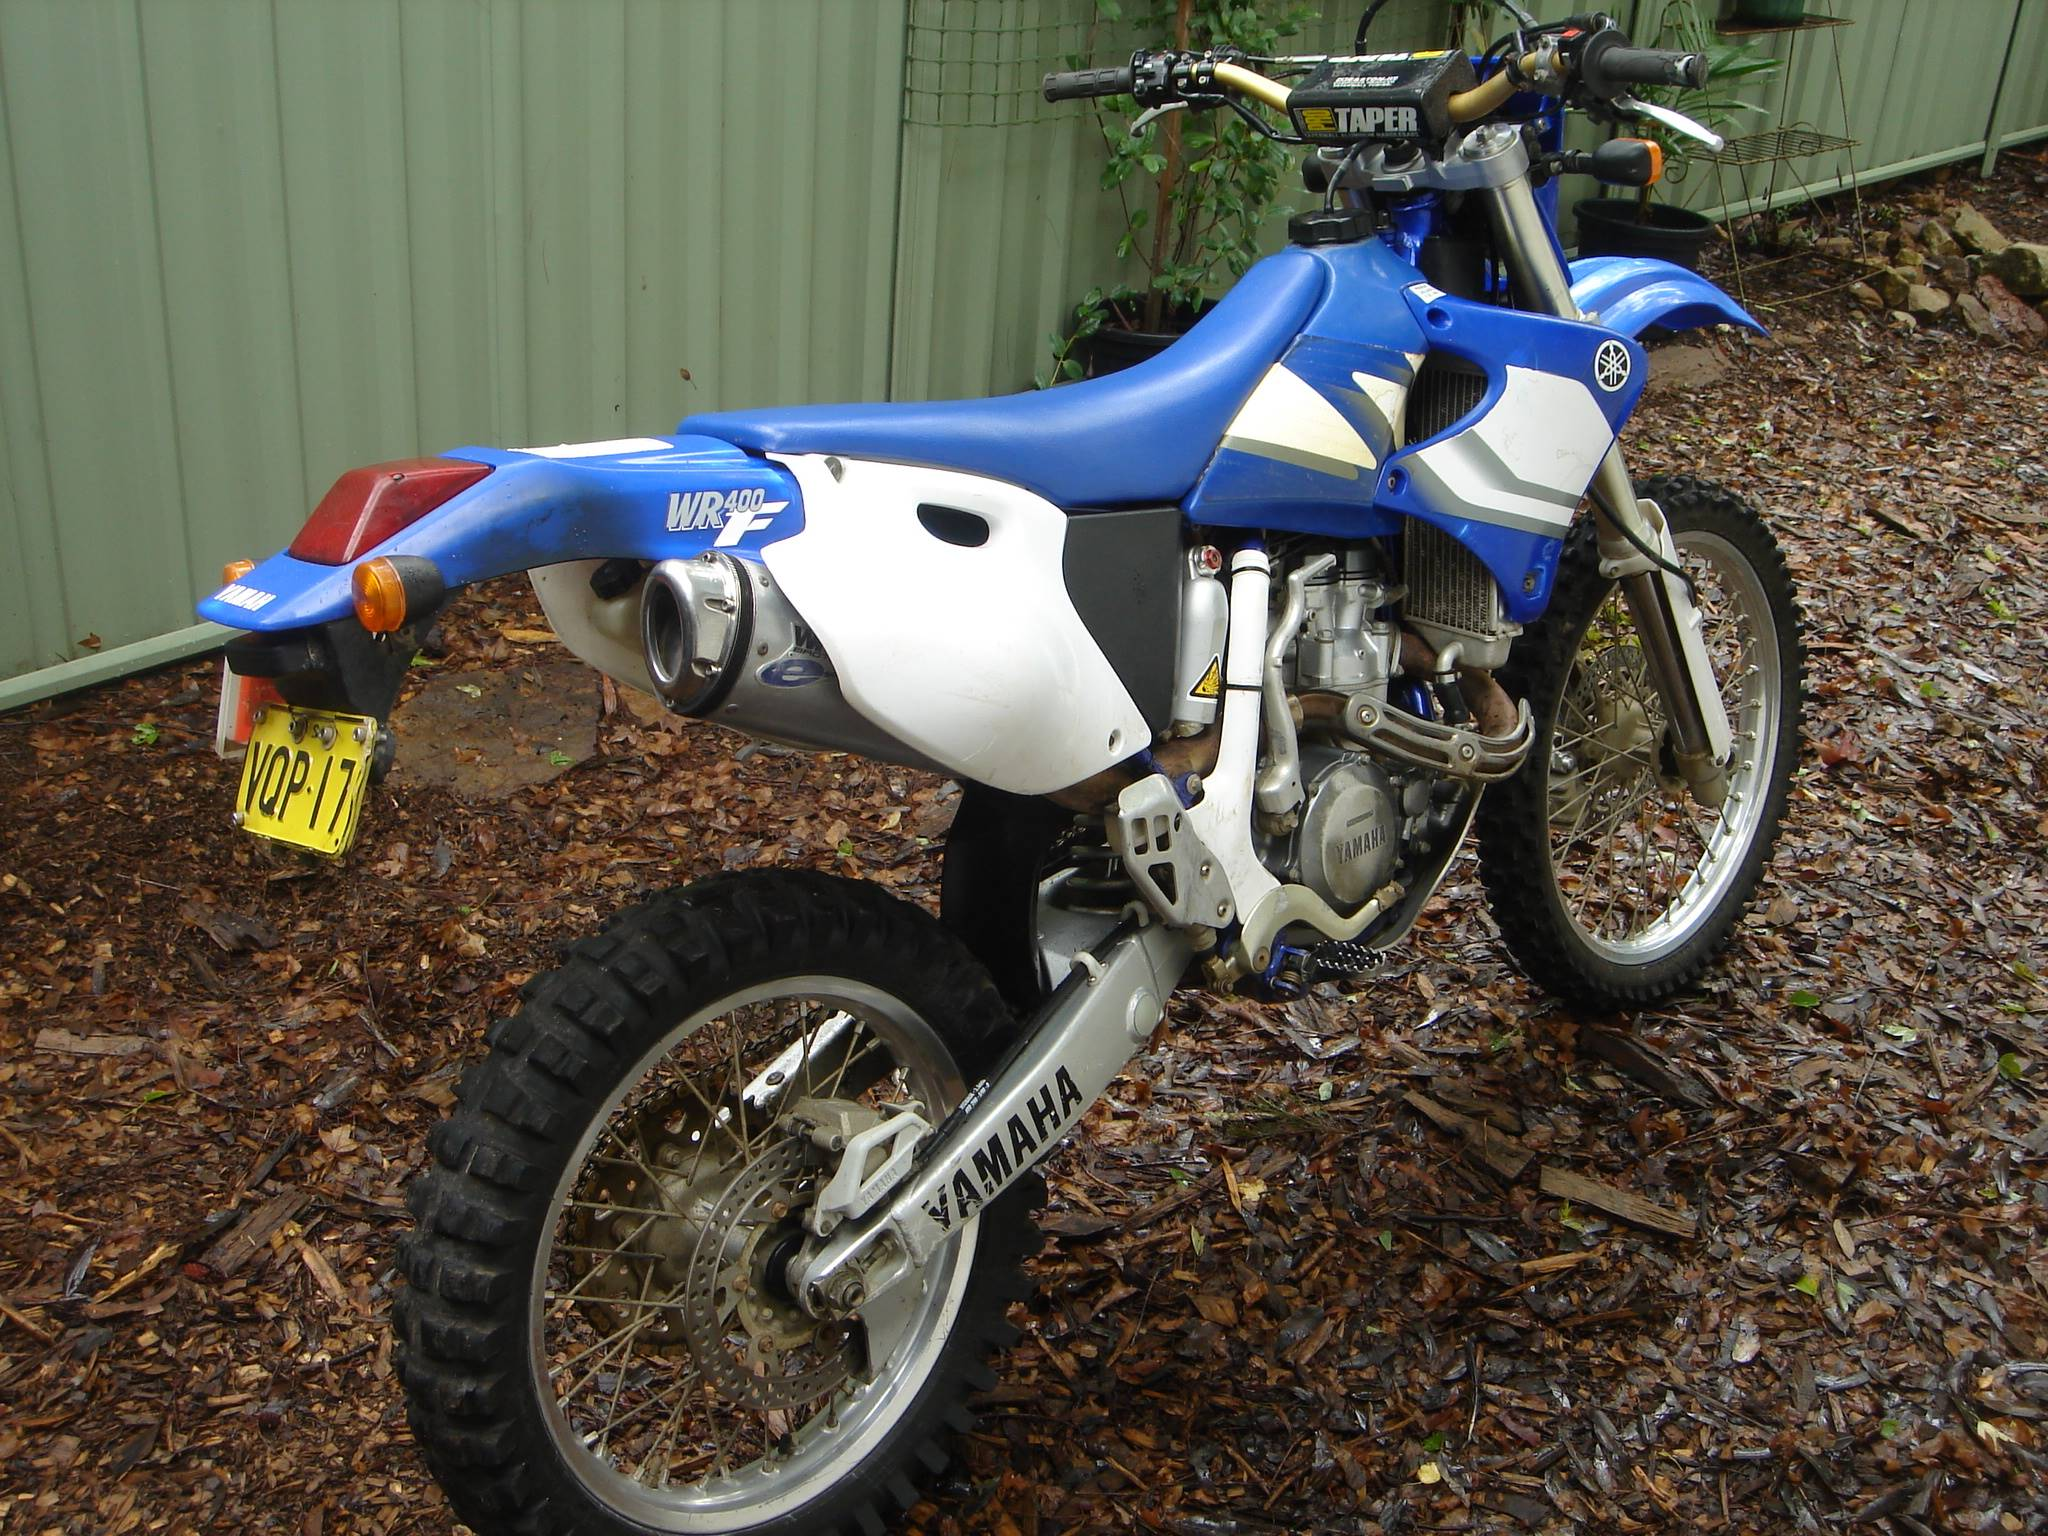 Cheap Used Fast Dirt Bike For Sale